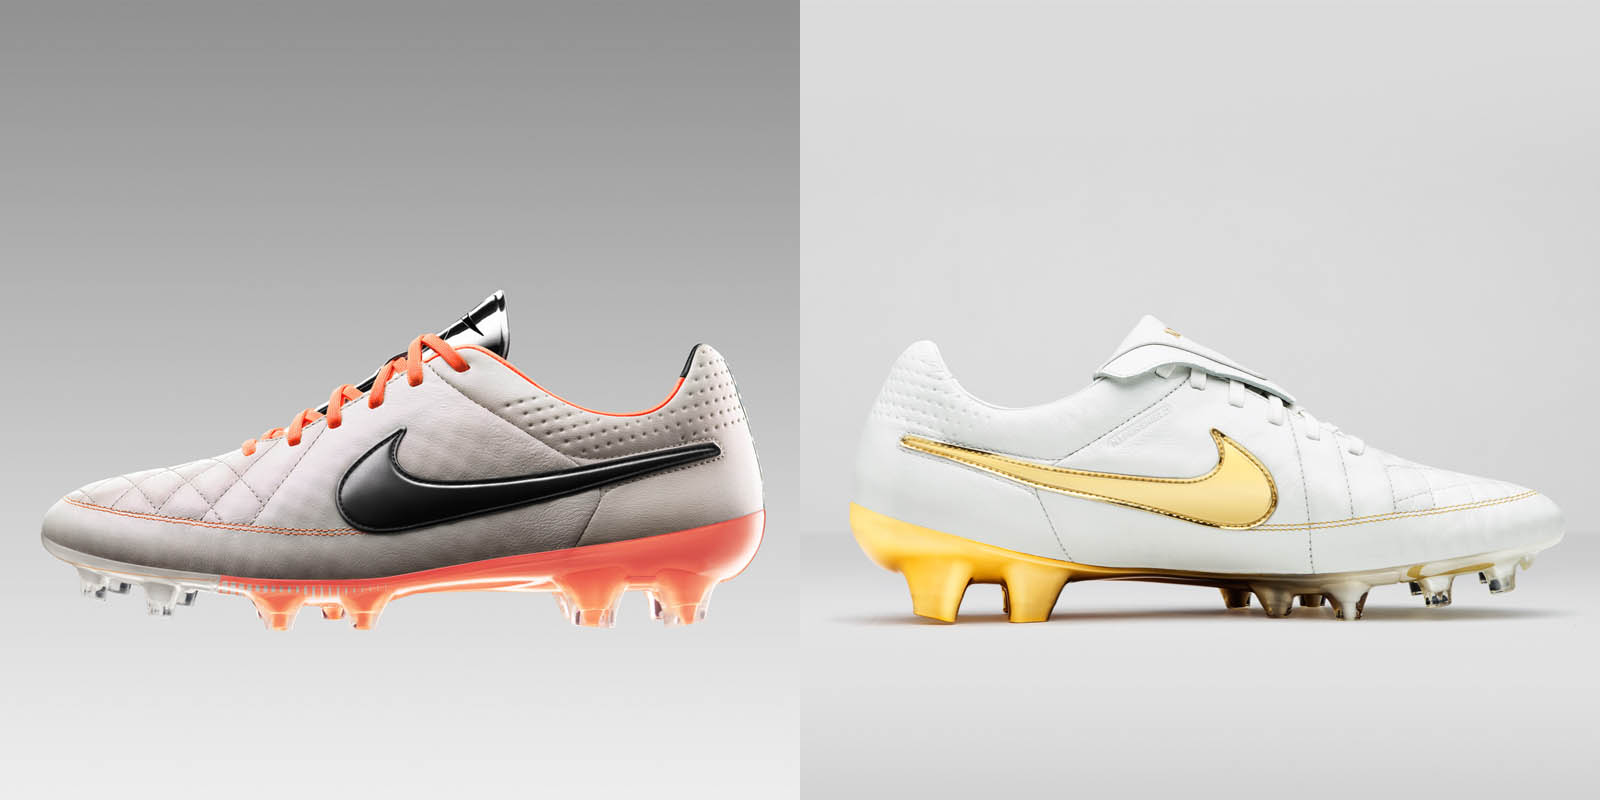 fa3d6ff70c1 ... wholesale 10r nike tiempo ronaldinho touch of gold from the striking  desert sand and atomic orange